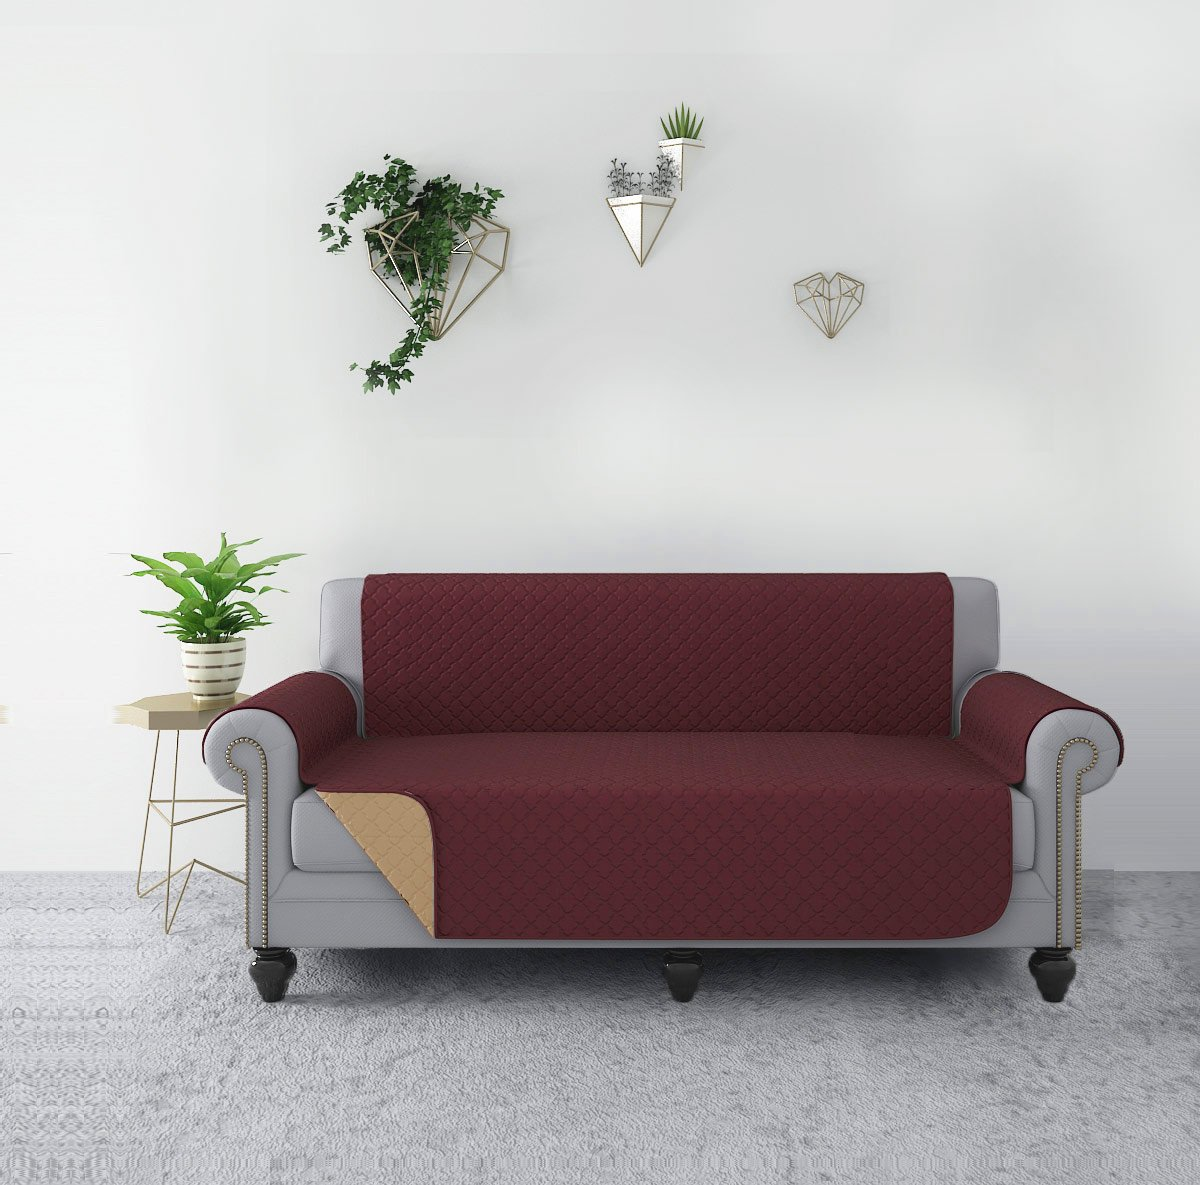 Get Quotations Rhf Reversible Sofa Cover Couch Covers For 3 Cushion